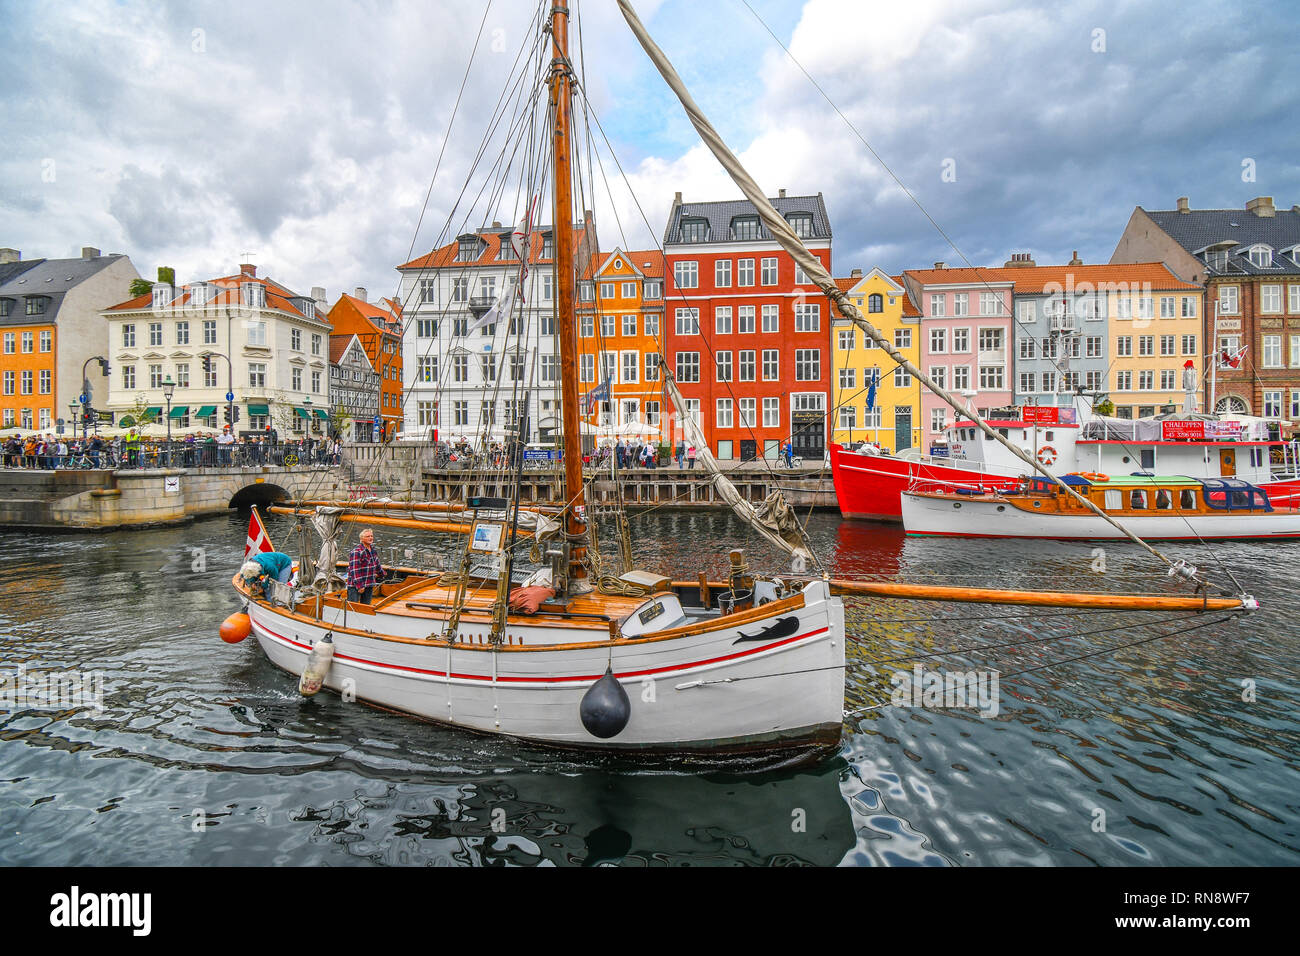 A senior man and woman dock their sailboat on the canal on an overcast day in the colorful 17th century Nyhavn district in Copenhagen, Denmark. - Stock Photo